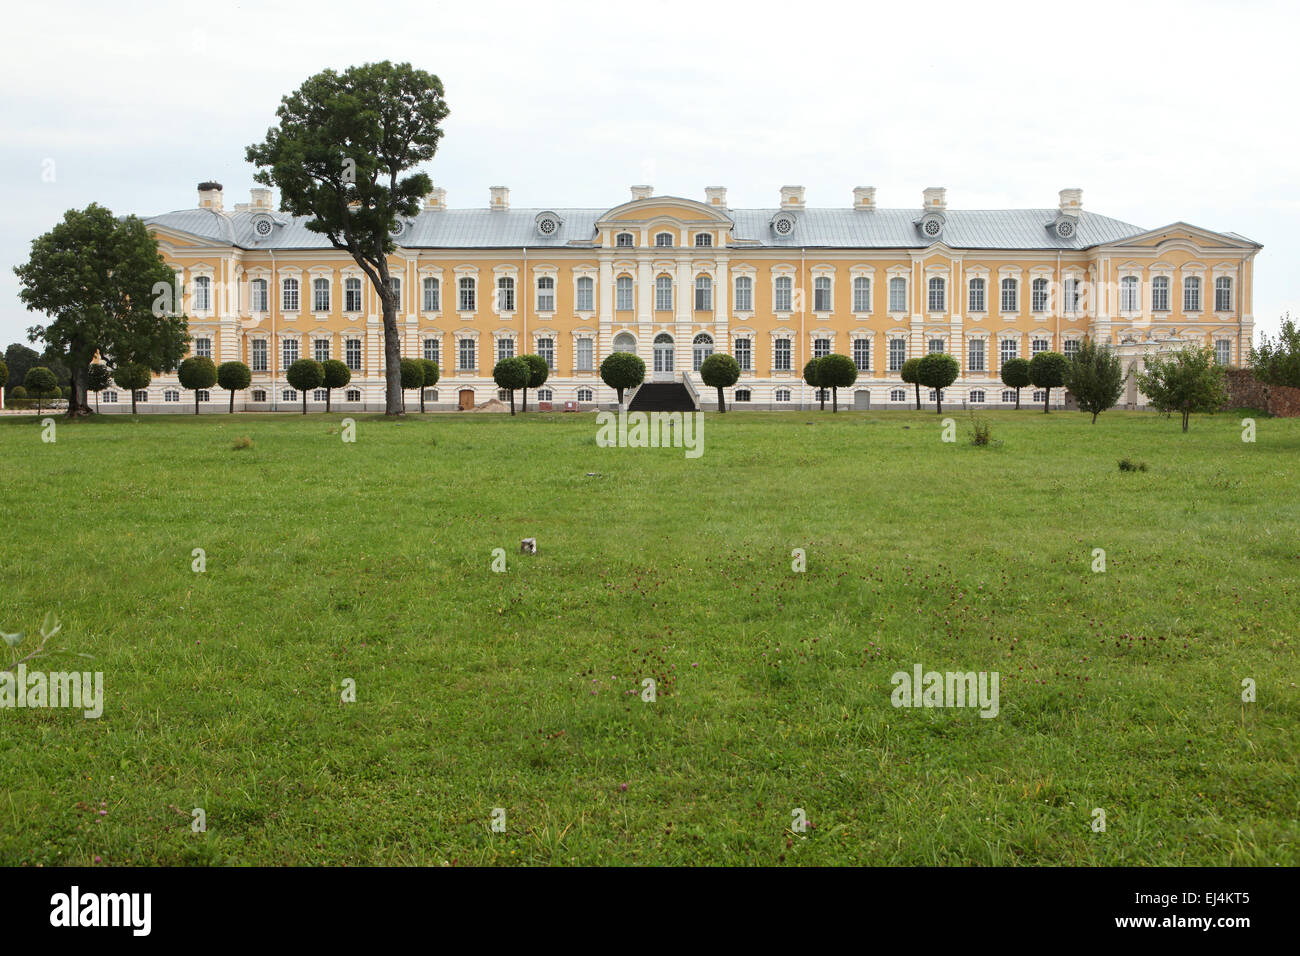 rundale palace latvia stockfotos rundale palace latvia bilder alamy. Black Bedroom Furniture Sets. Home Design Ideas